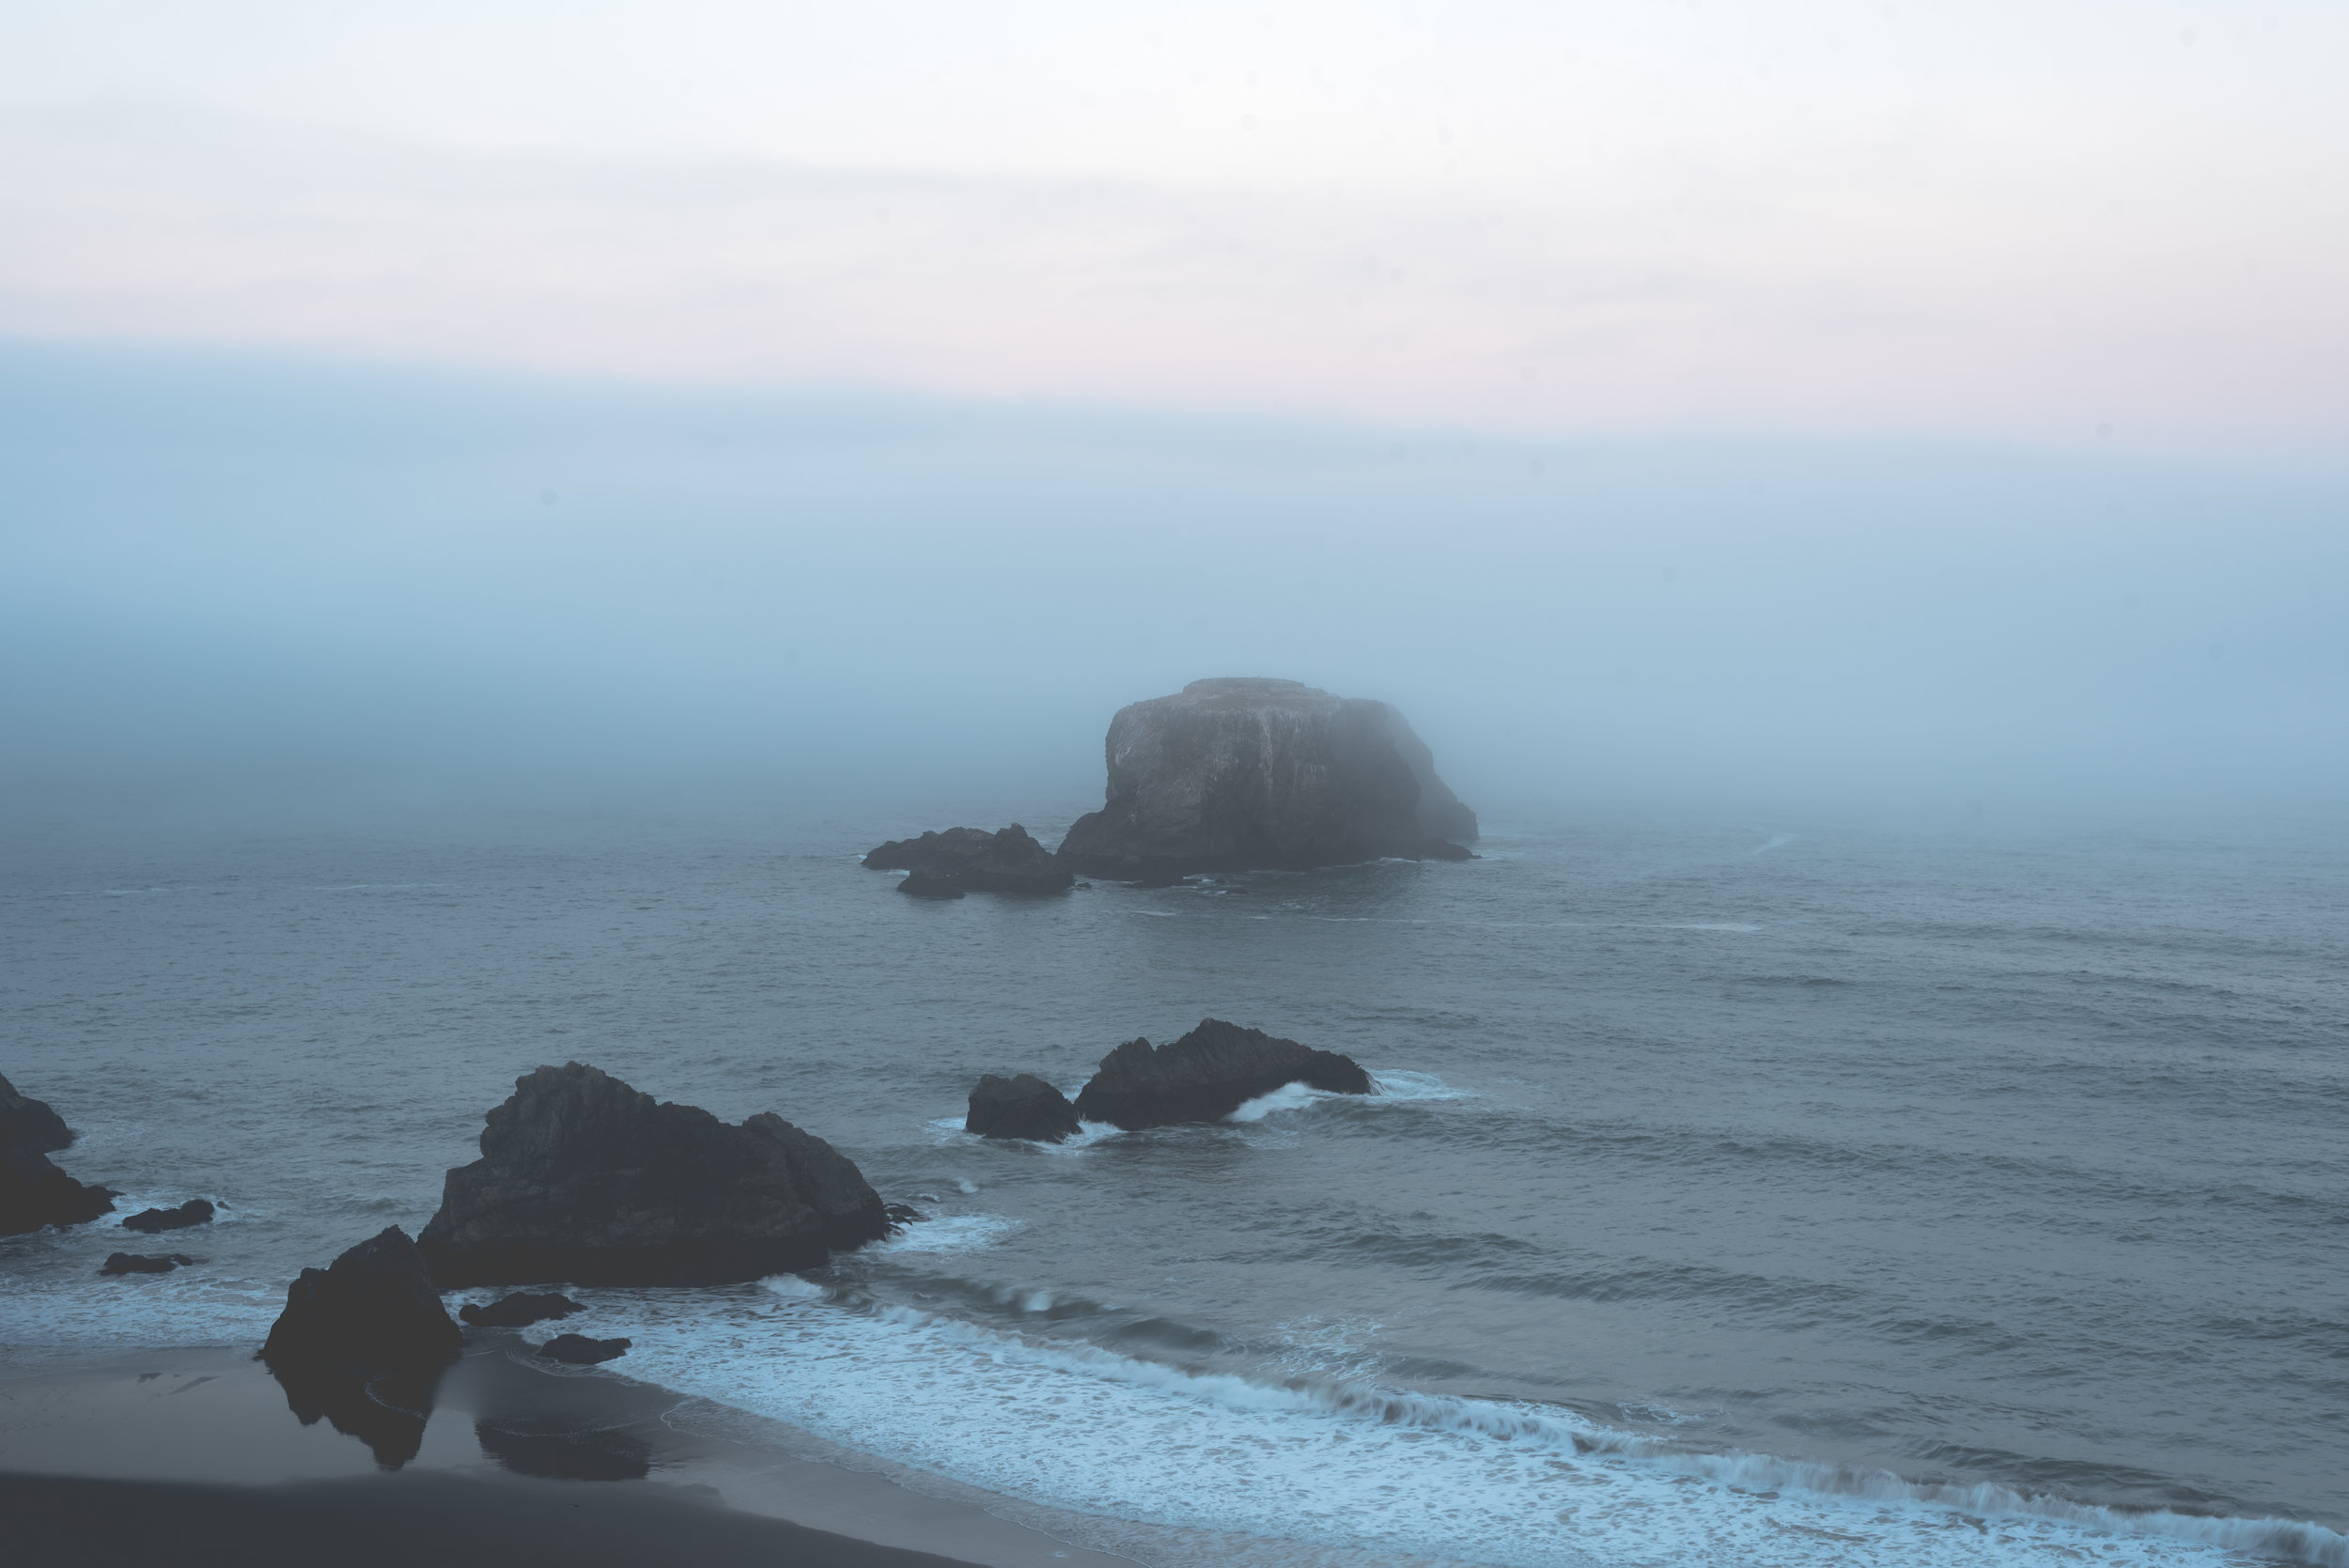 Morning fog rolling in at Bodega Bay. ISO 50, f/11, 1/4